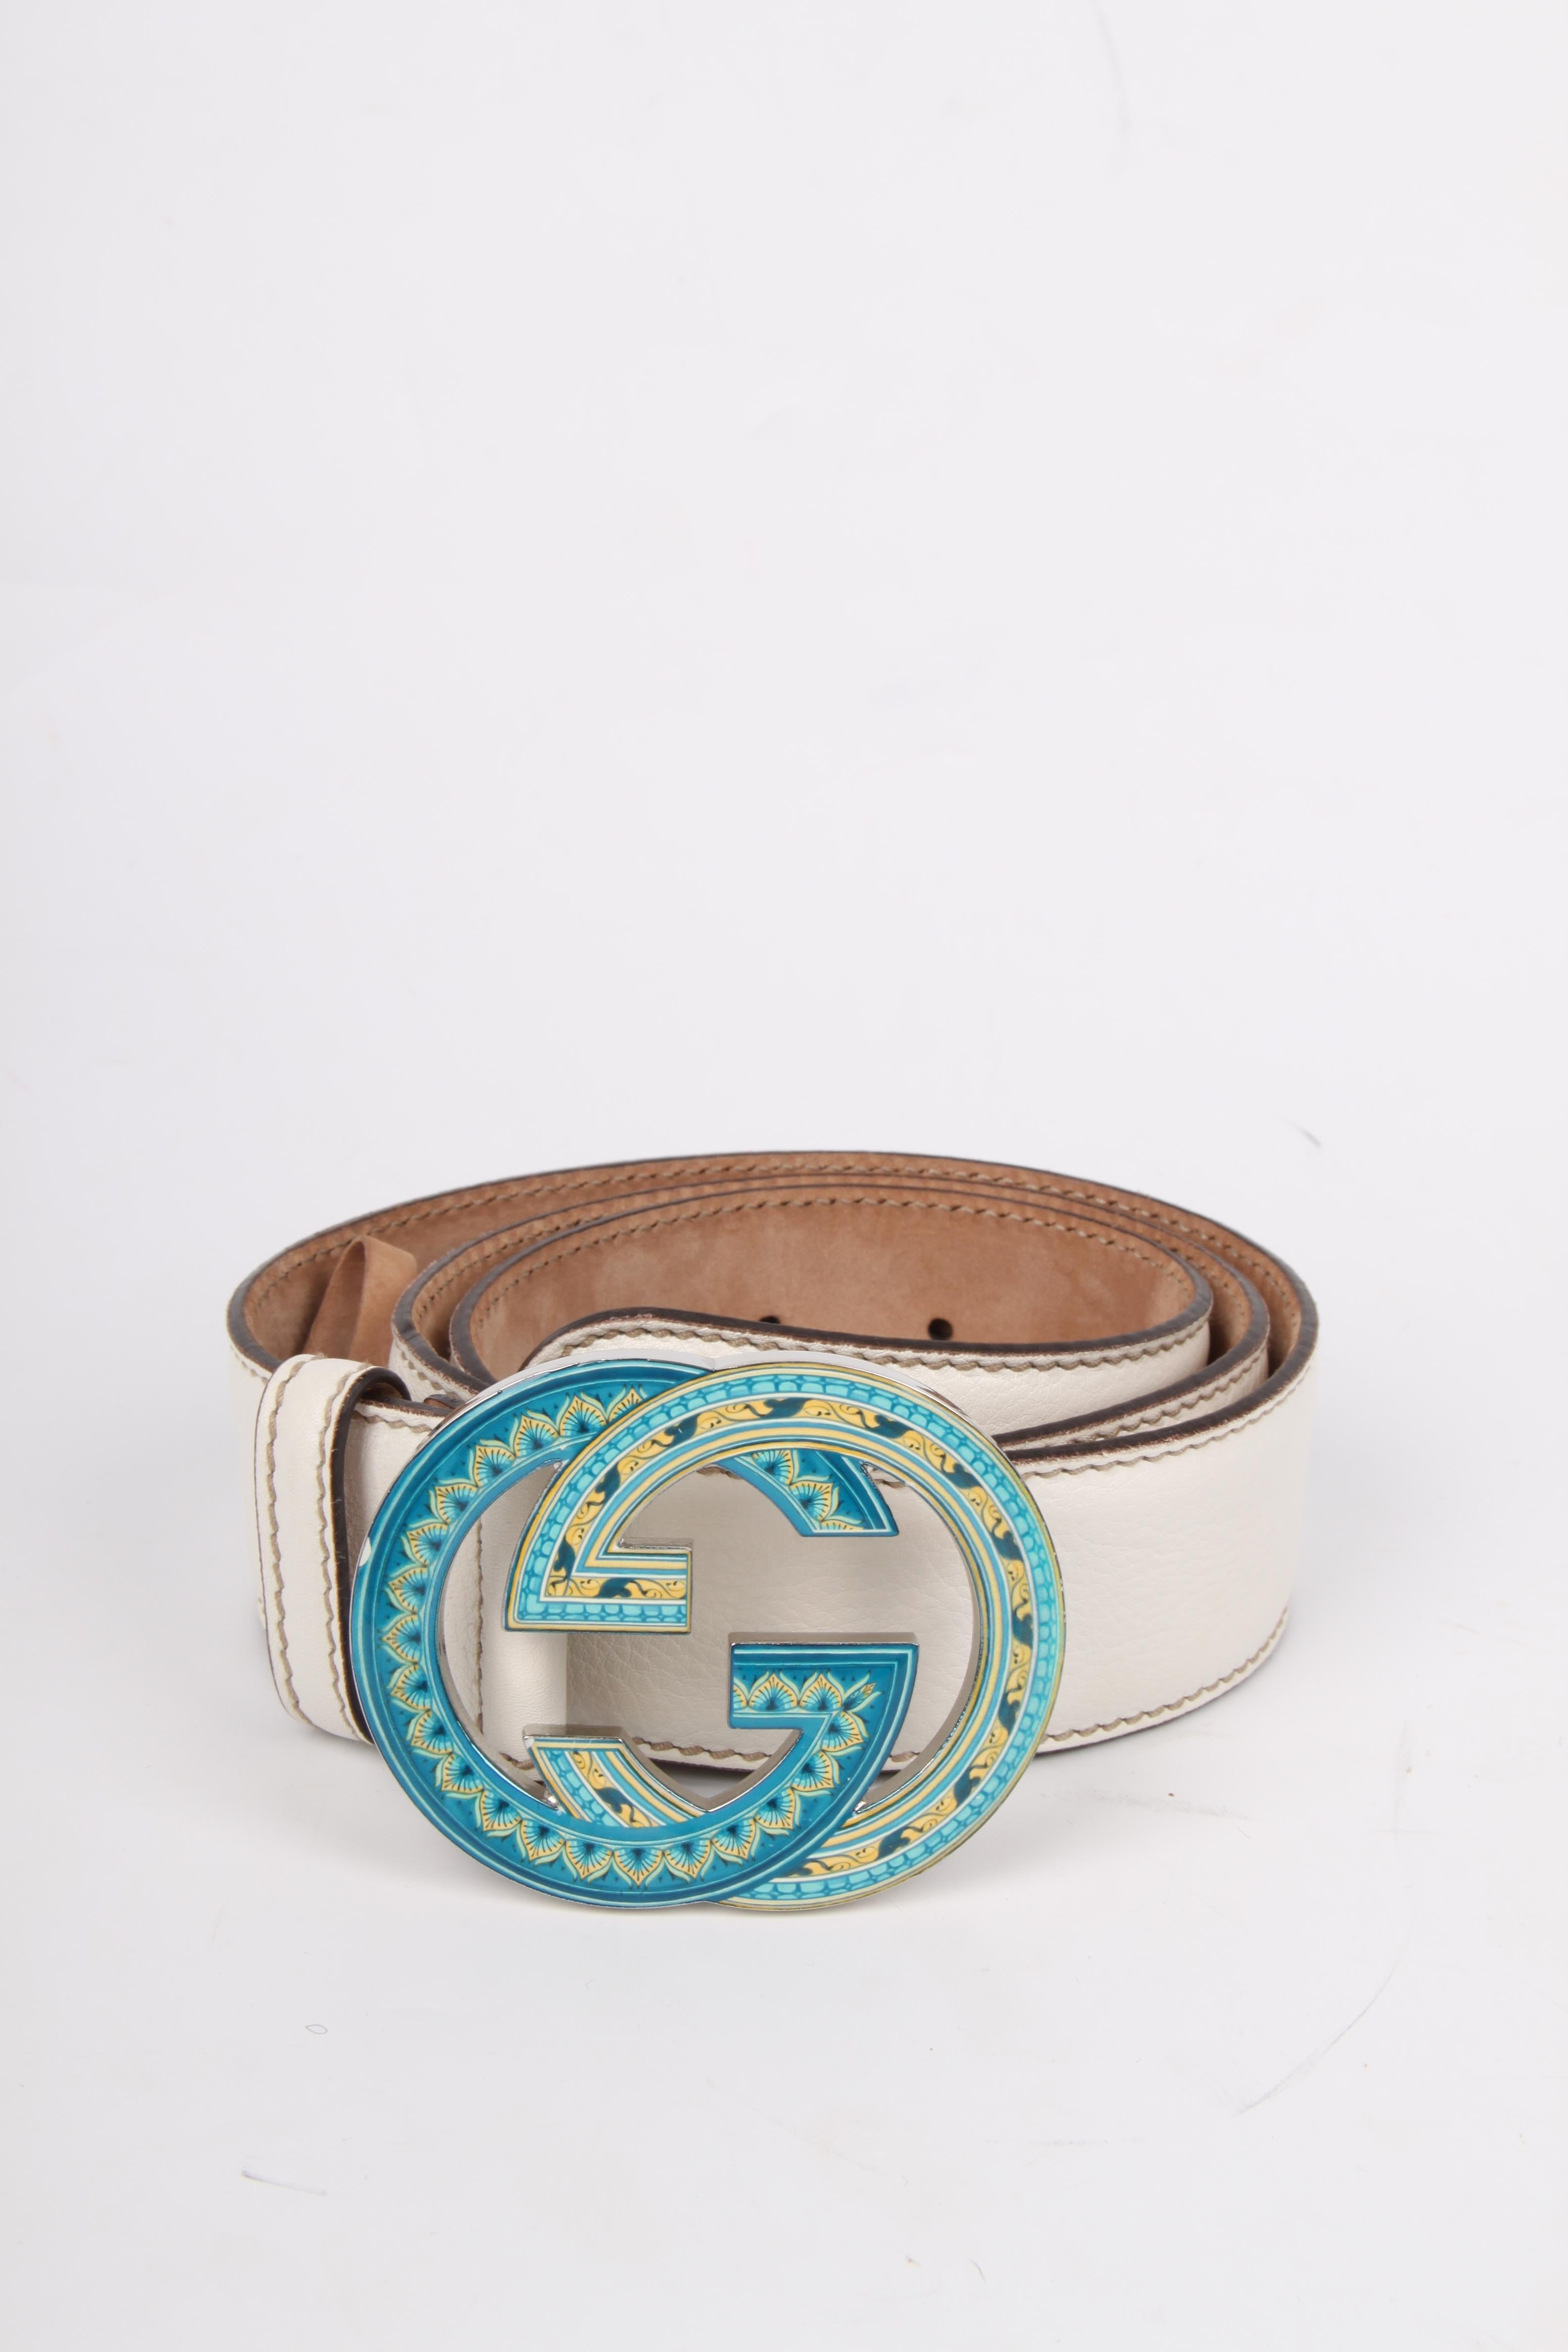 479475f6988 Gucci GG Leather Belt - white turquoise at 1stdibs